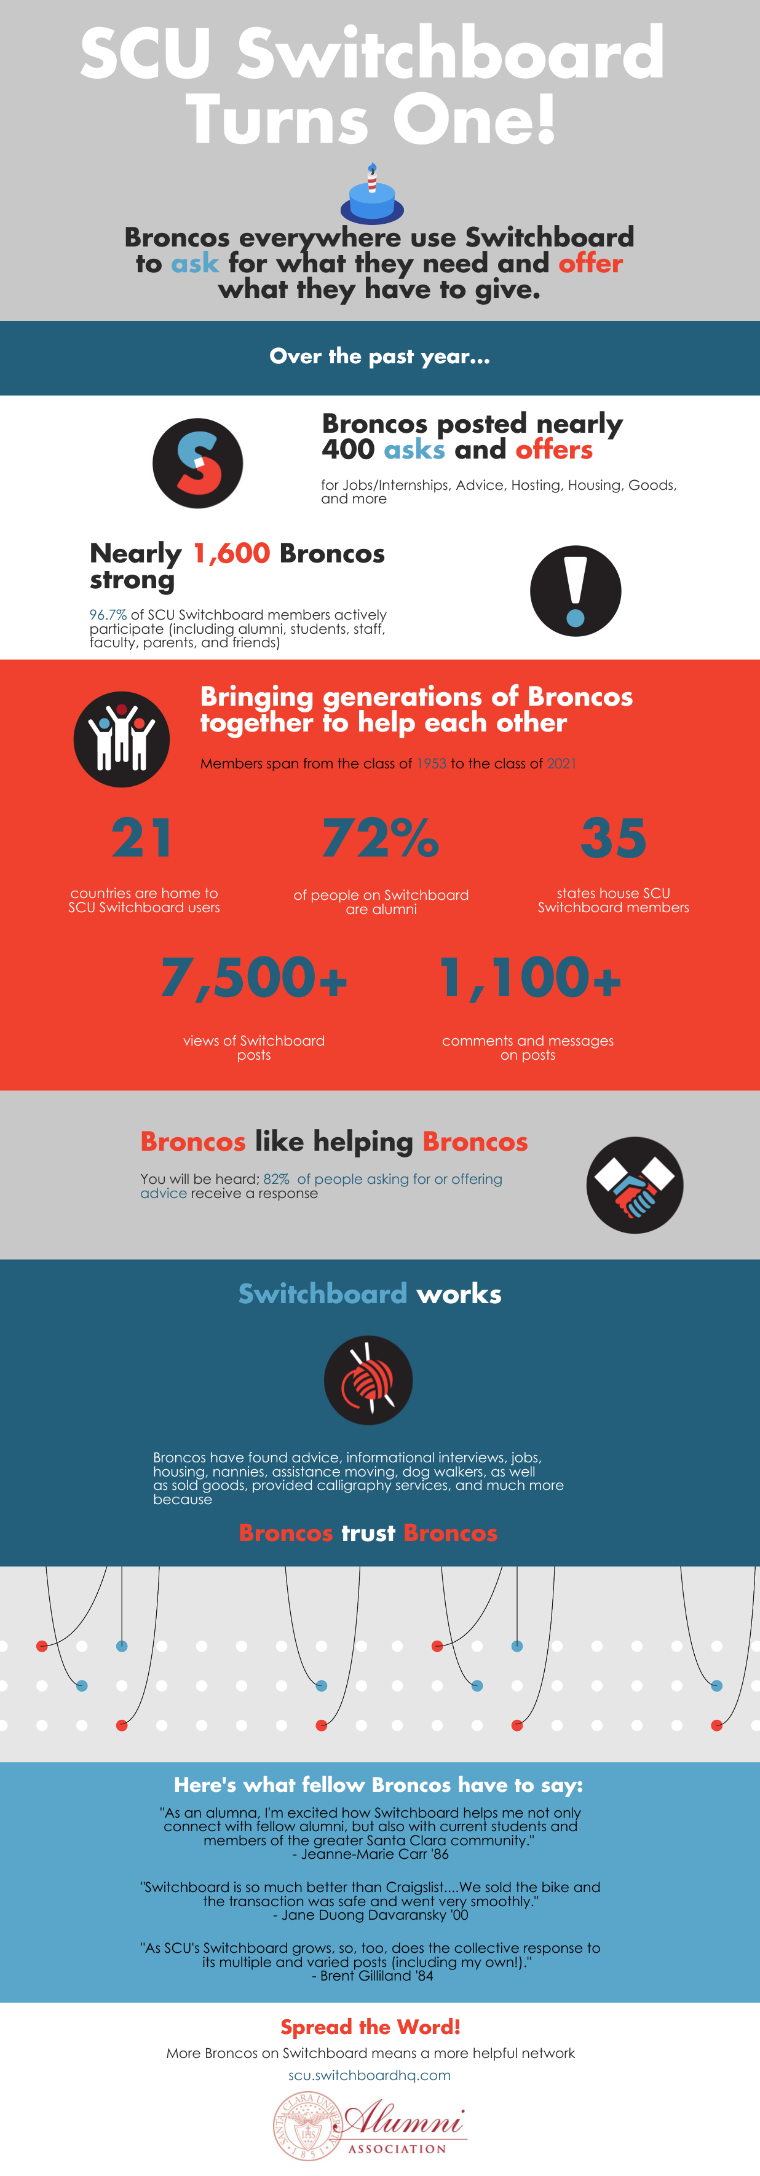 An infographic showing statistics about SCU Switchboard